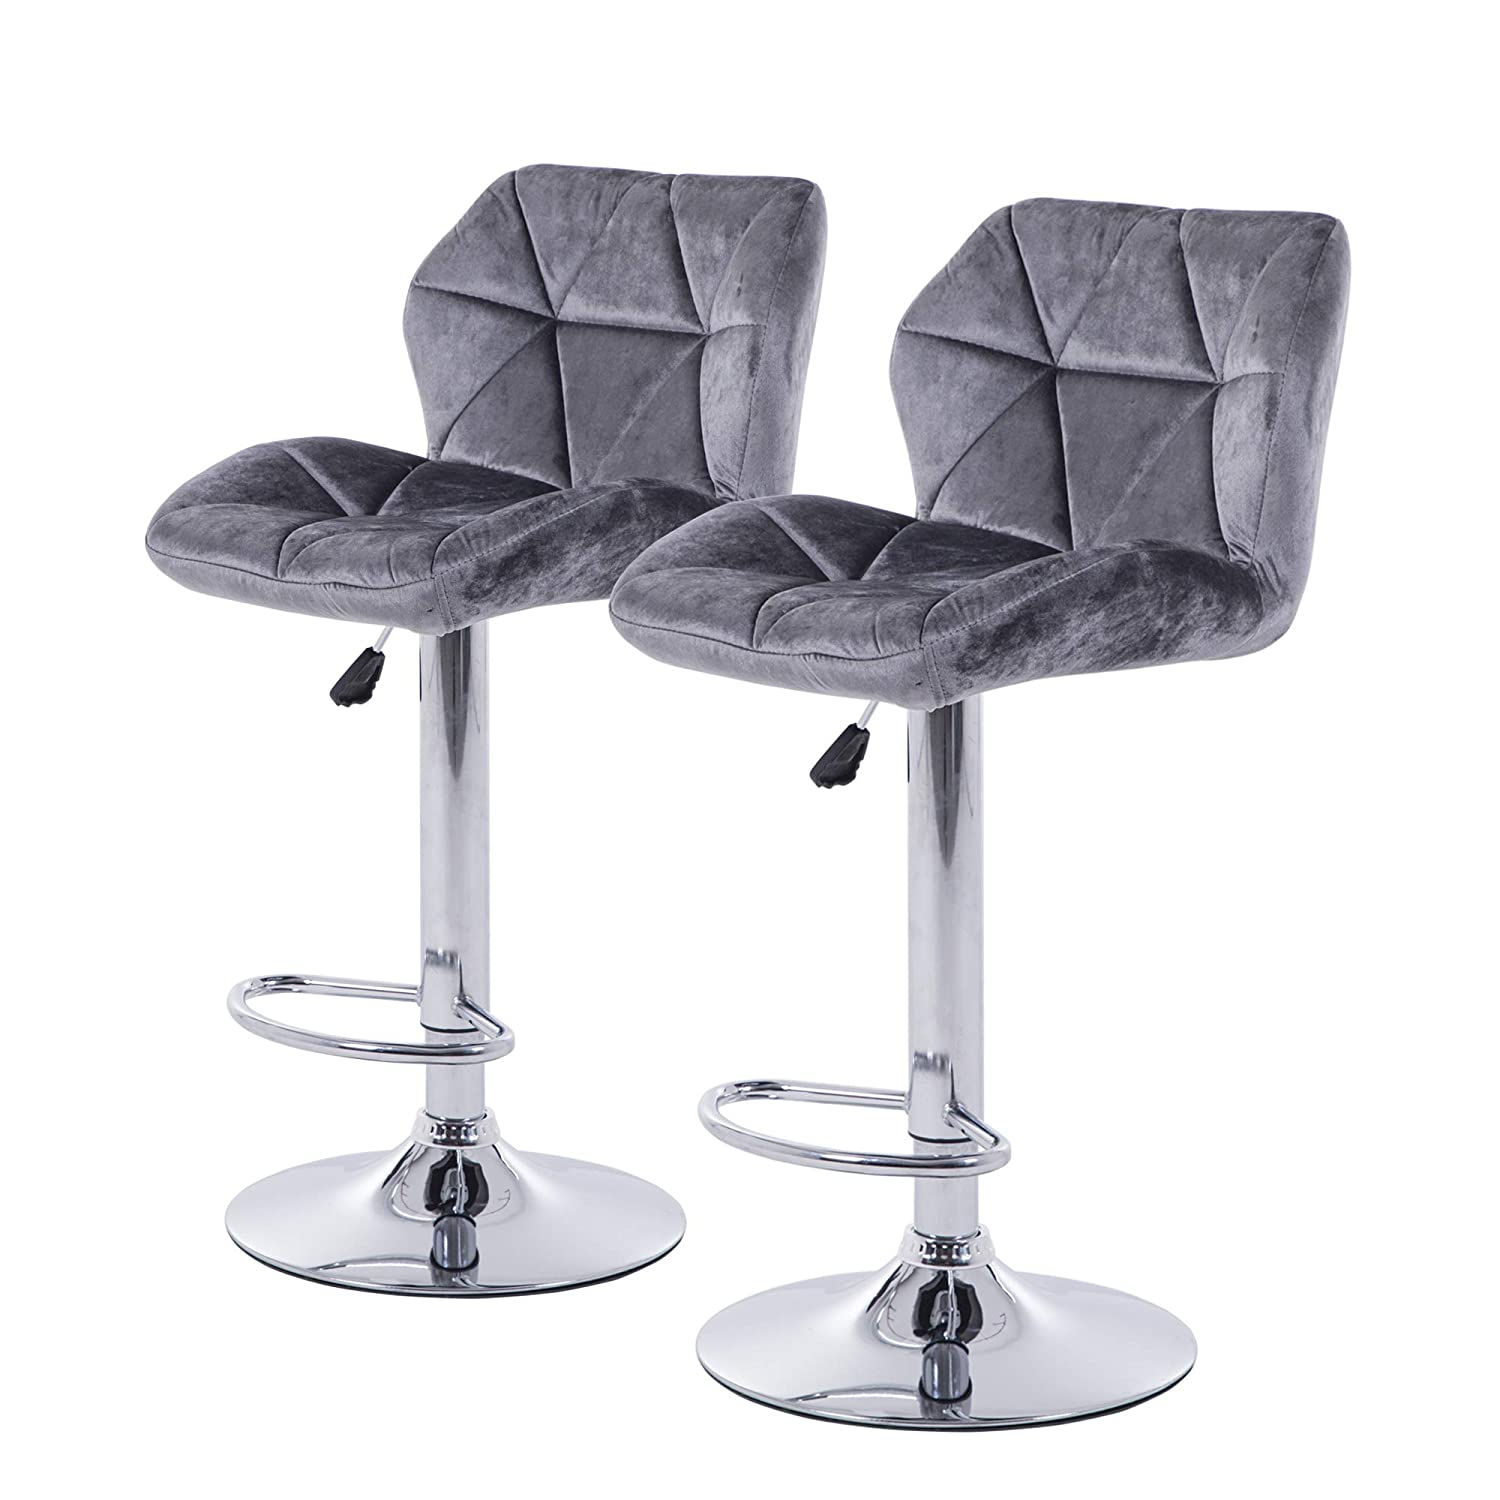 NOBPEINT Shell Back Adjustable Swivel Bar Stools, Gray Set of 2